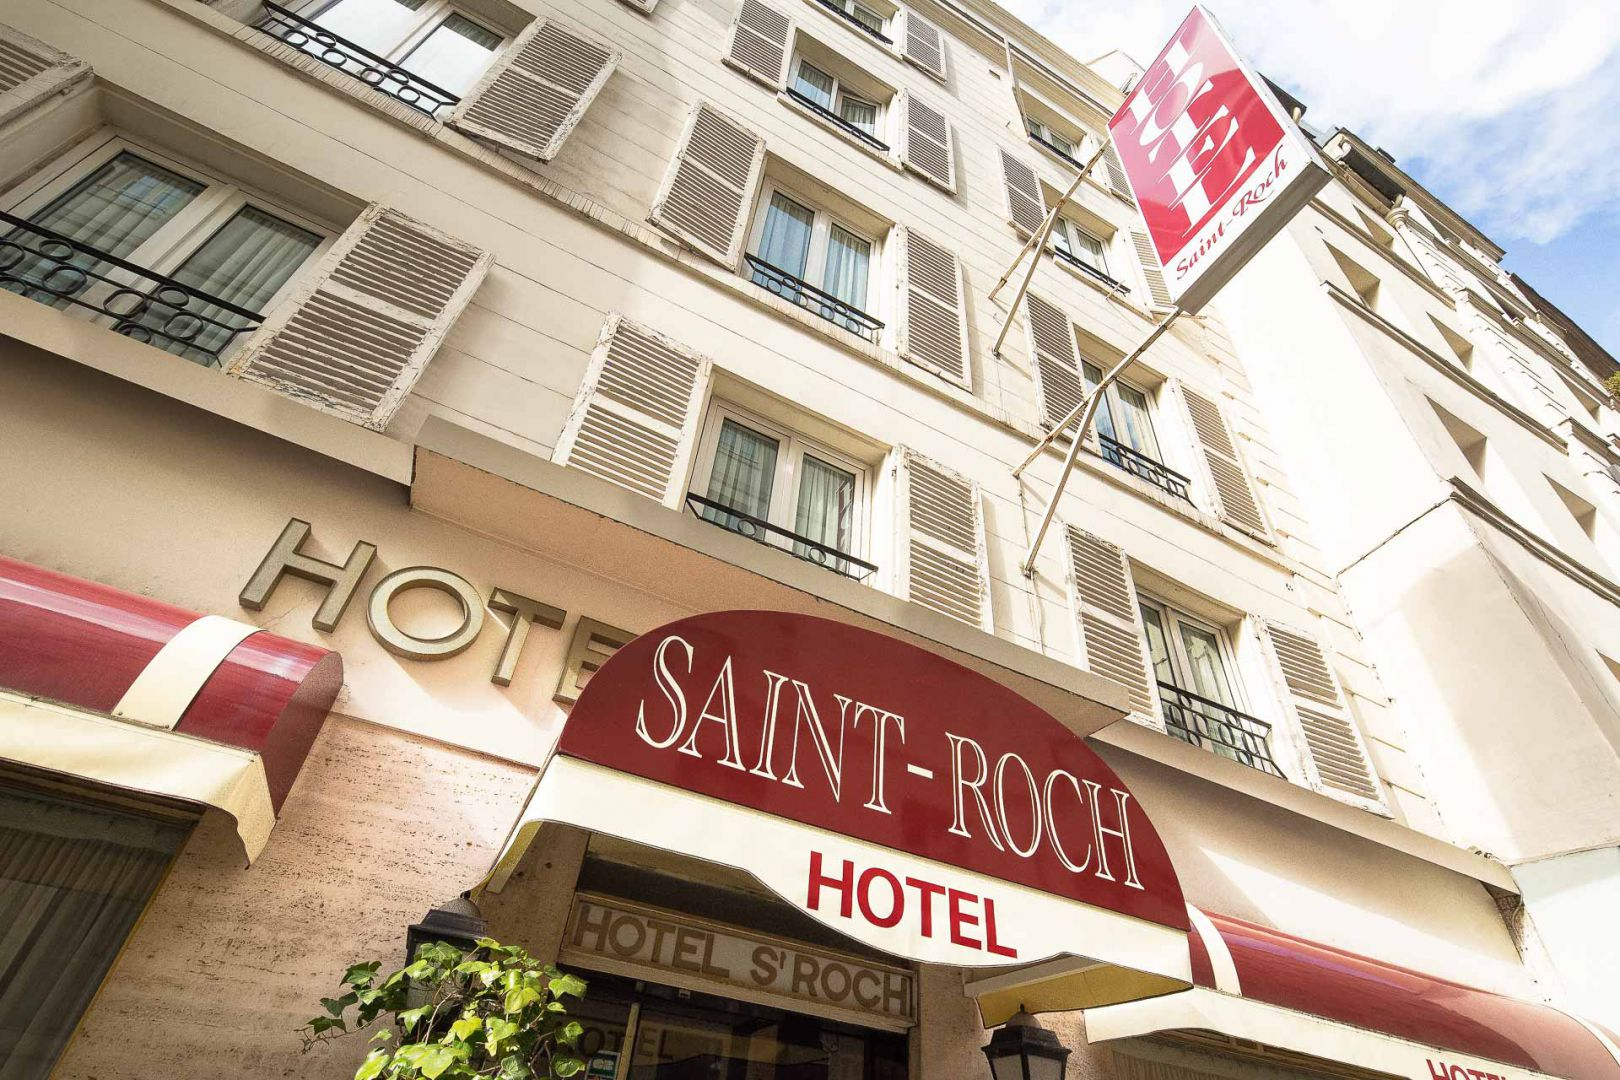 pictures hotel saint roch hotel near saint roch 39 s church paris. Black Bedroom Furniture Sets. Home Design Ideas